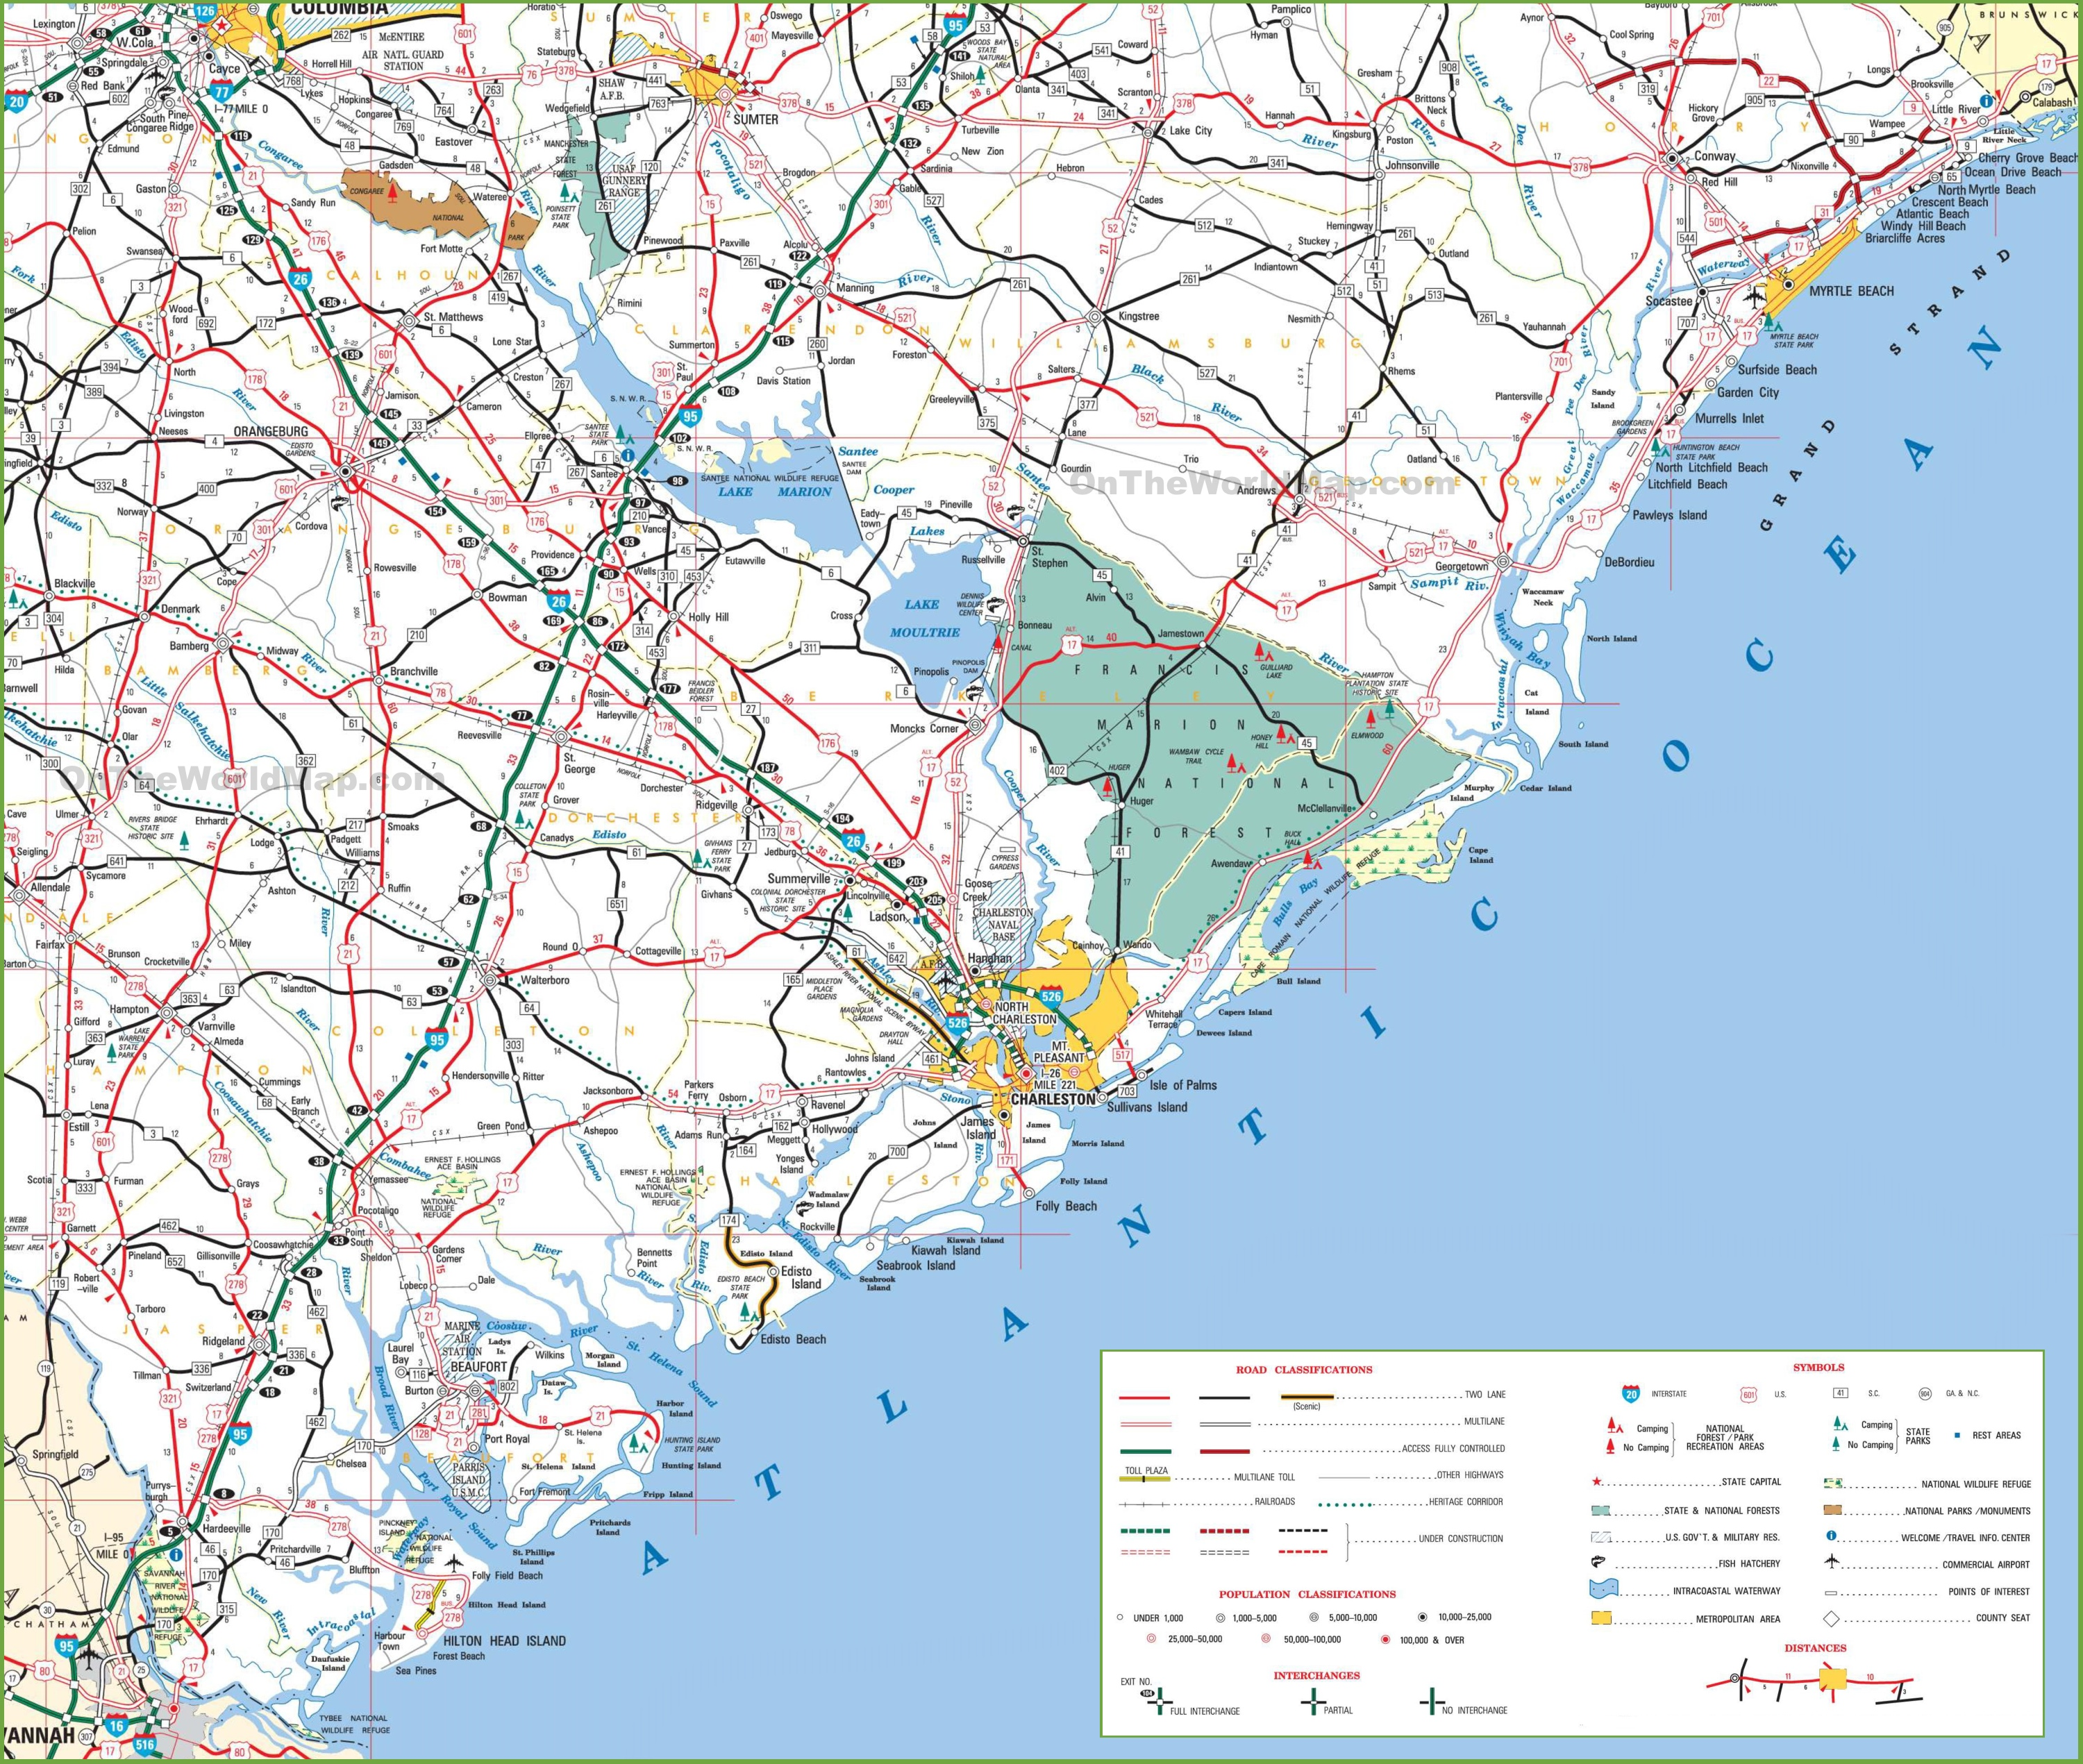 Map Of South Carolina Cost With Beaches - Map to south carolina